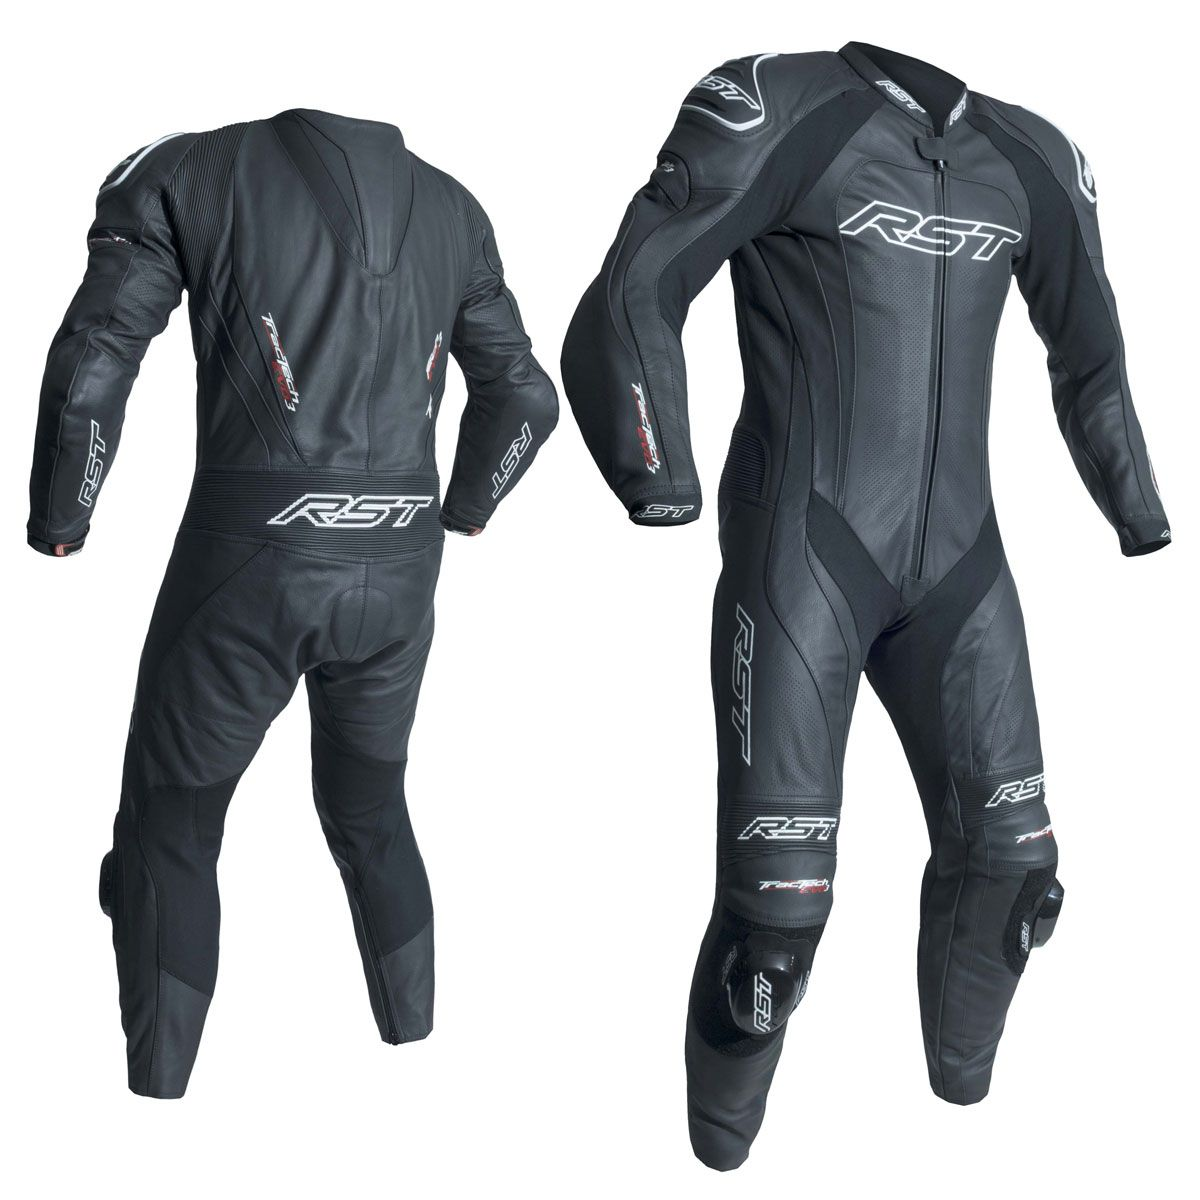 RST Tractech Evo 3 CE One Piece Leather Suit Black / Black